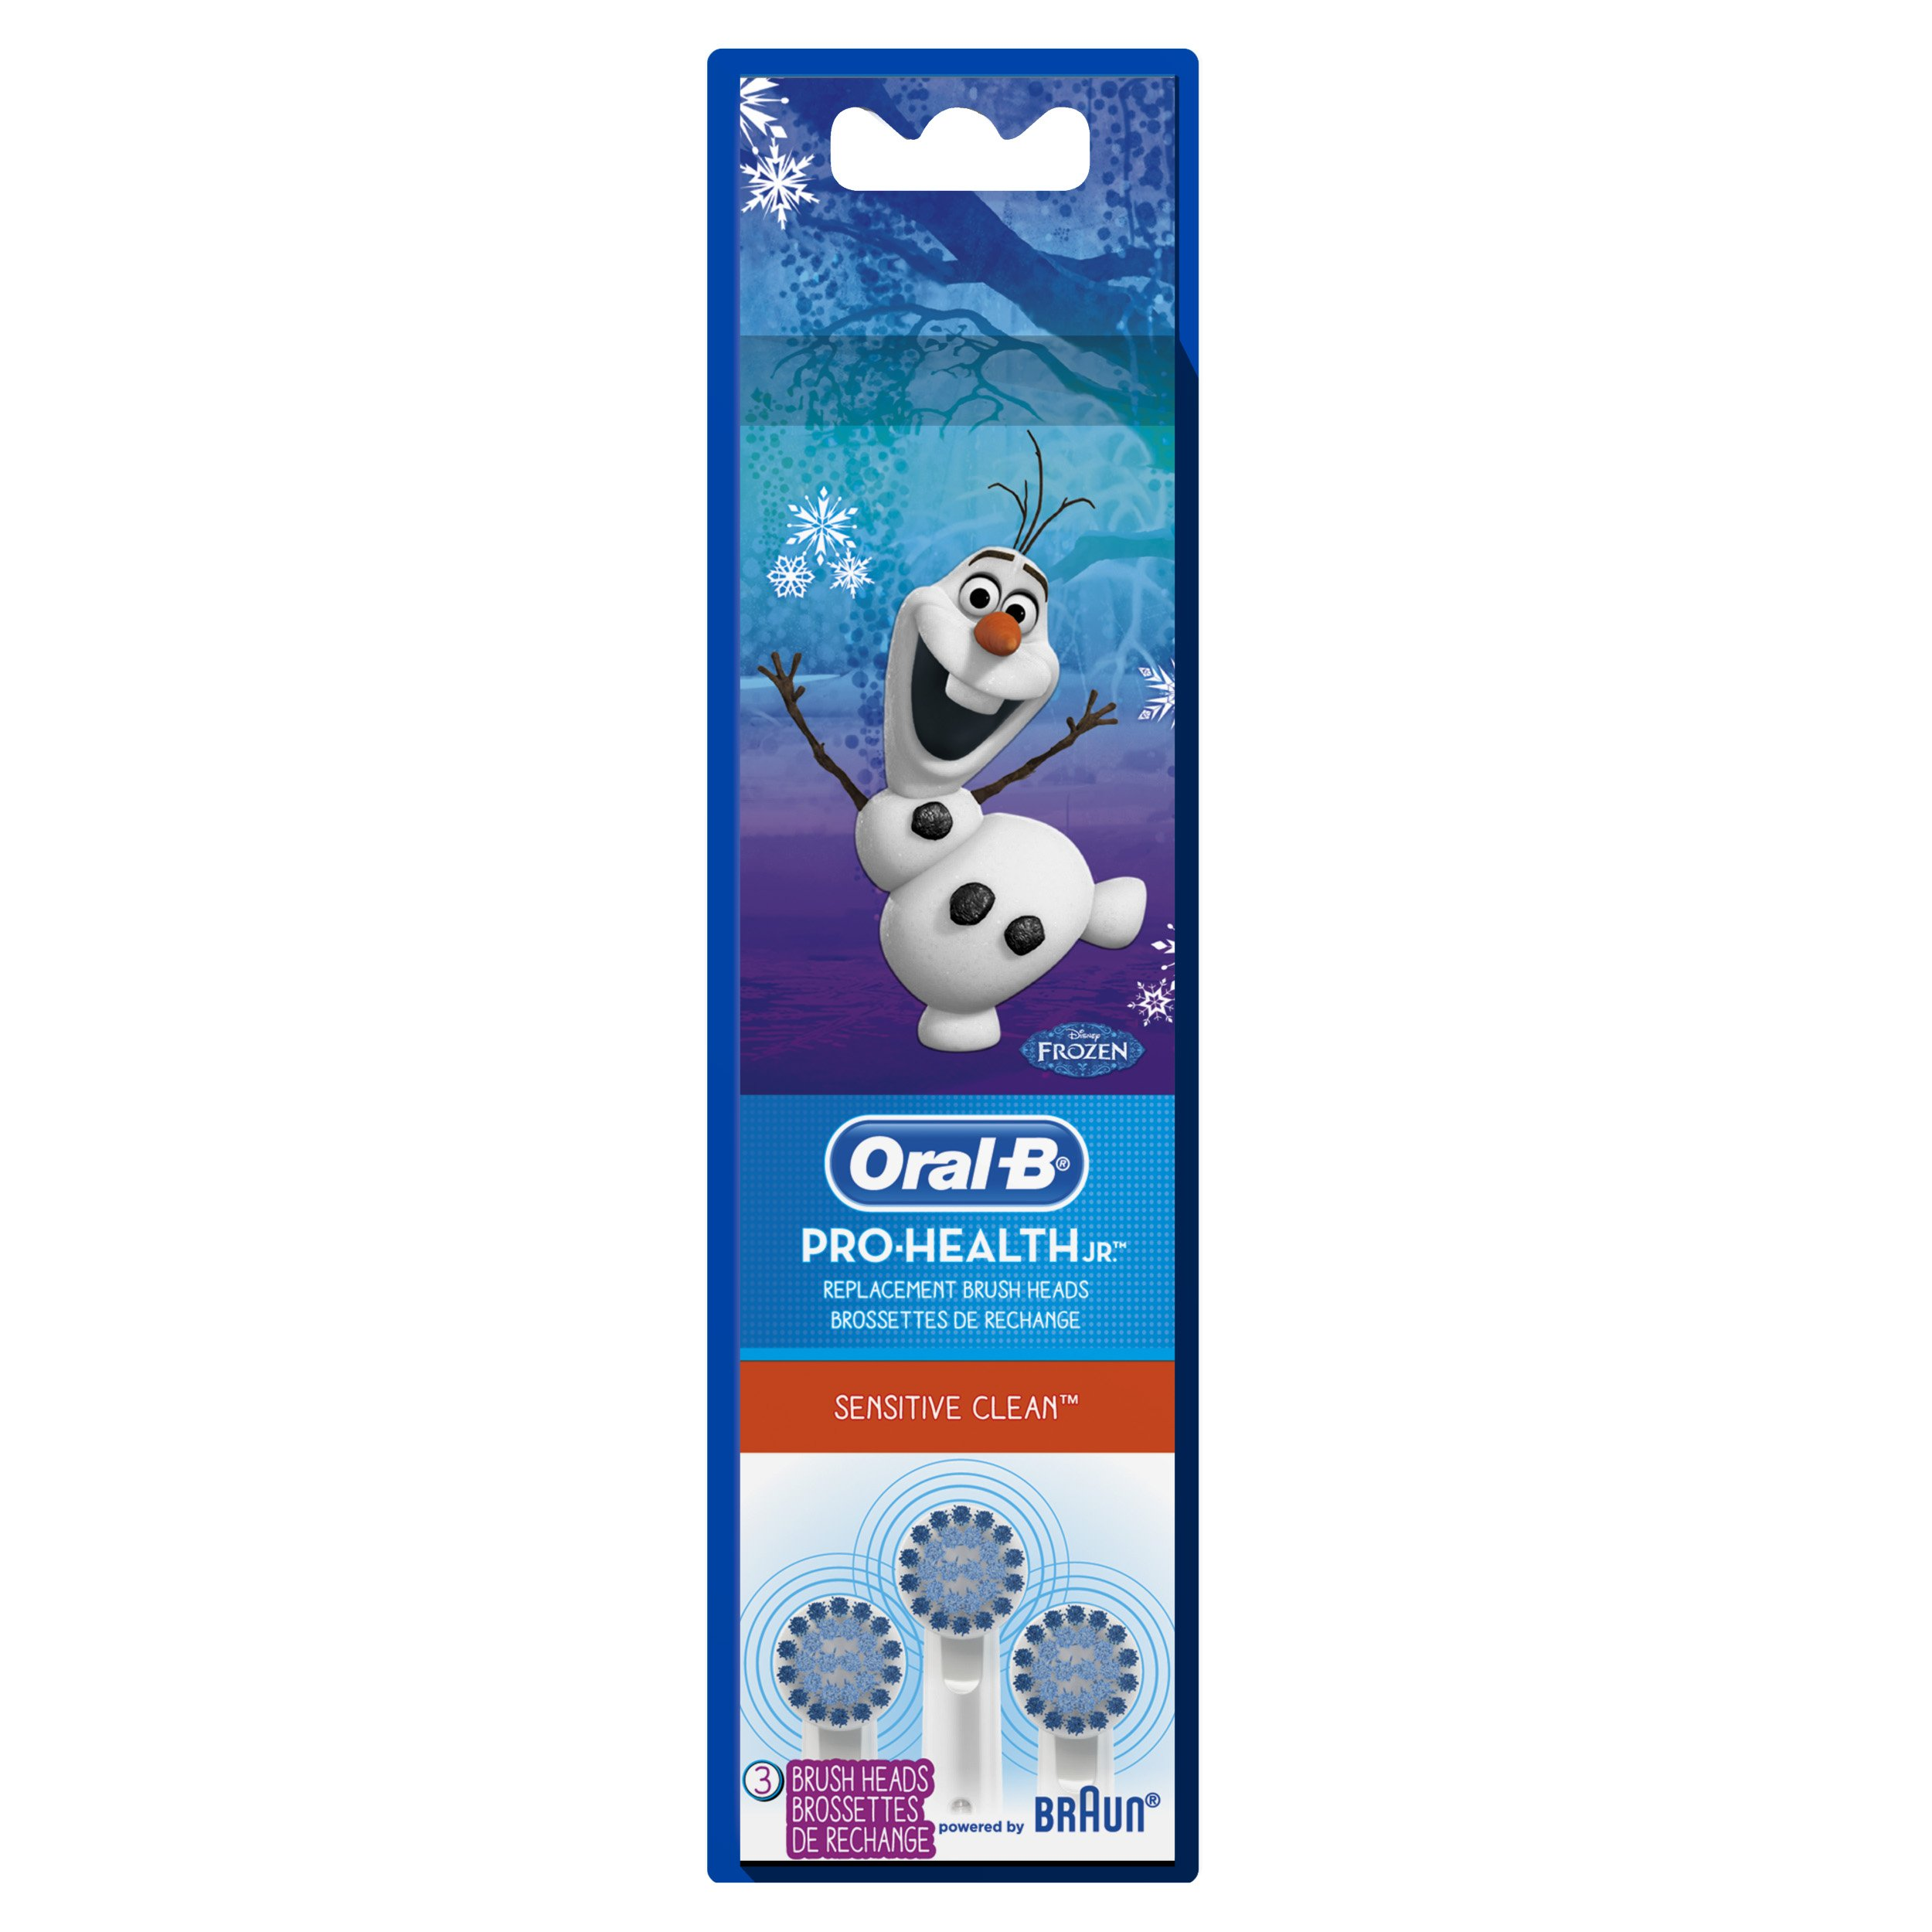 Oral-B Power Toothbrush Replacement Toothbrush Heads featuring Disney's Frozen, Extra Soft, 3 Count